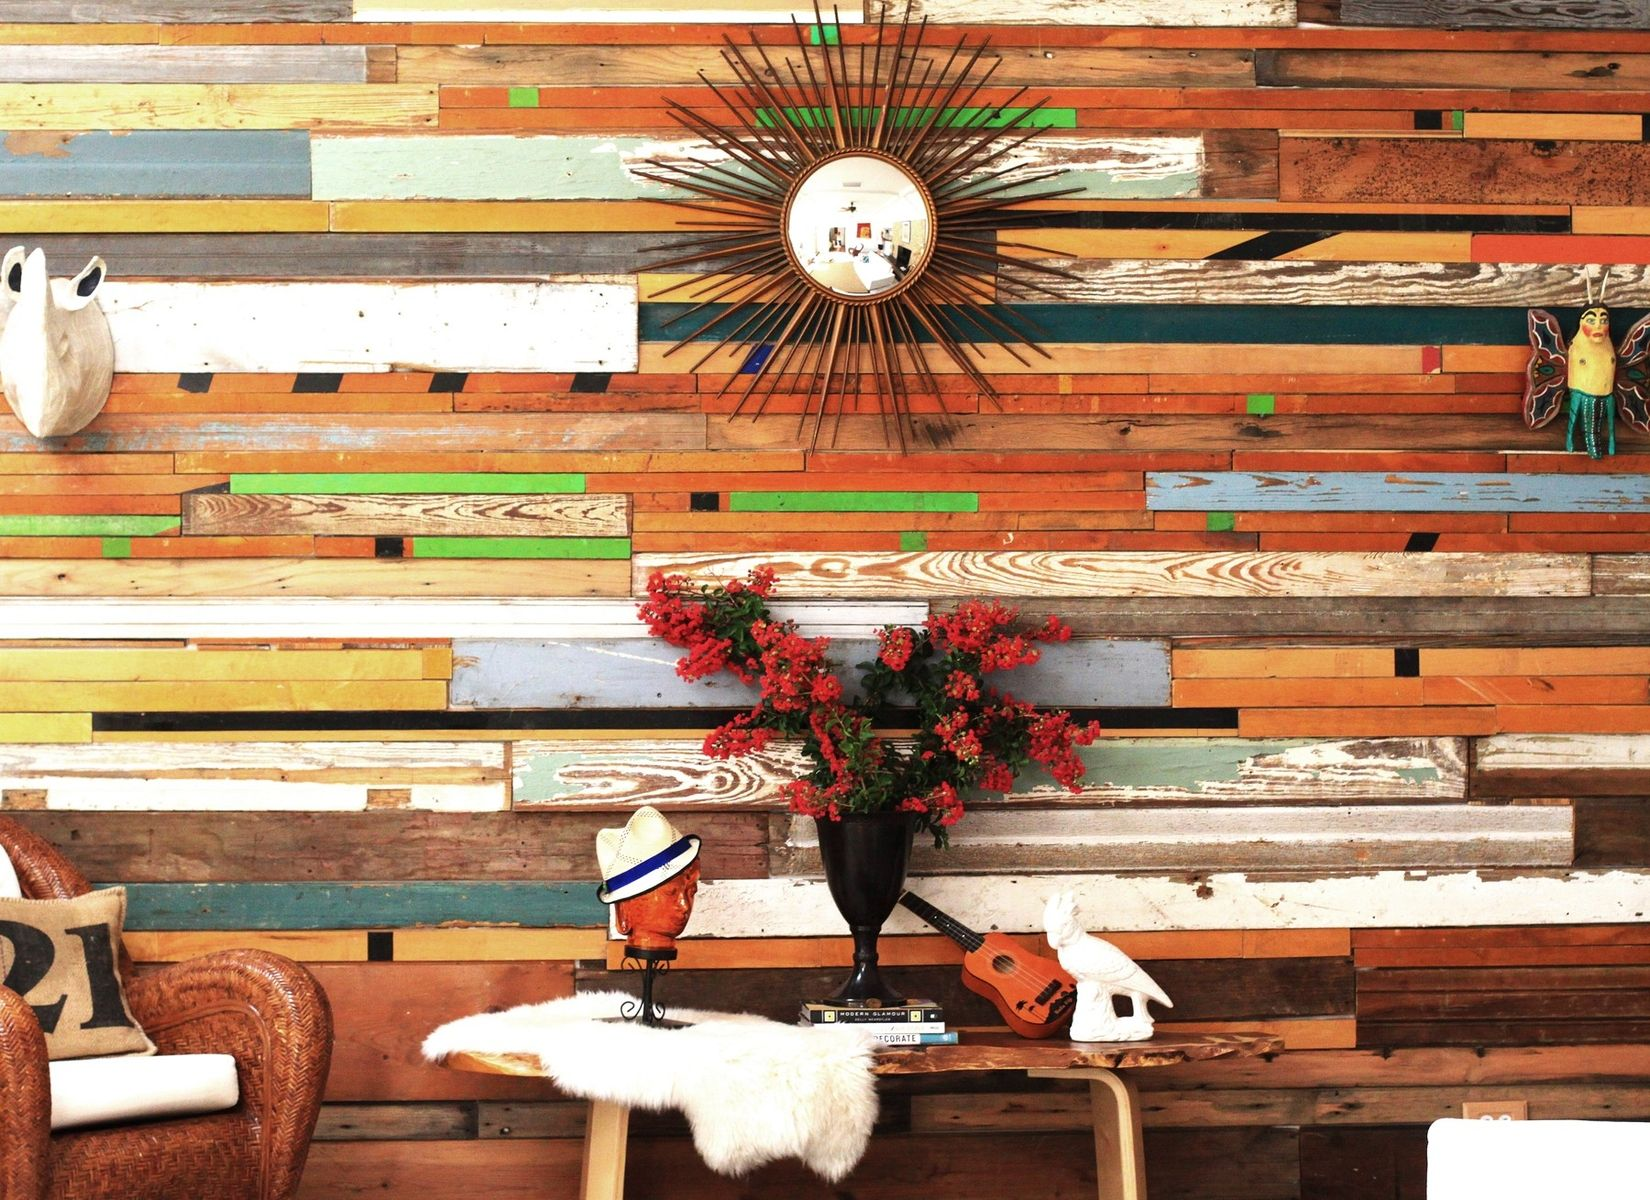 Hand made reclaimed wood wall installations by r r designworks - Wooden wall design ...